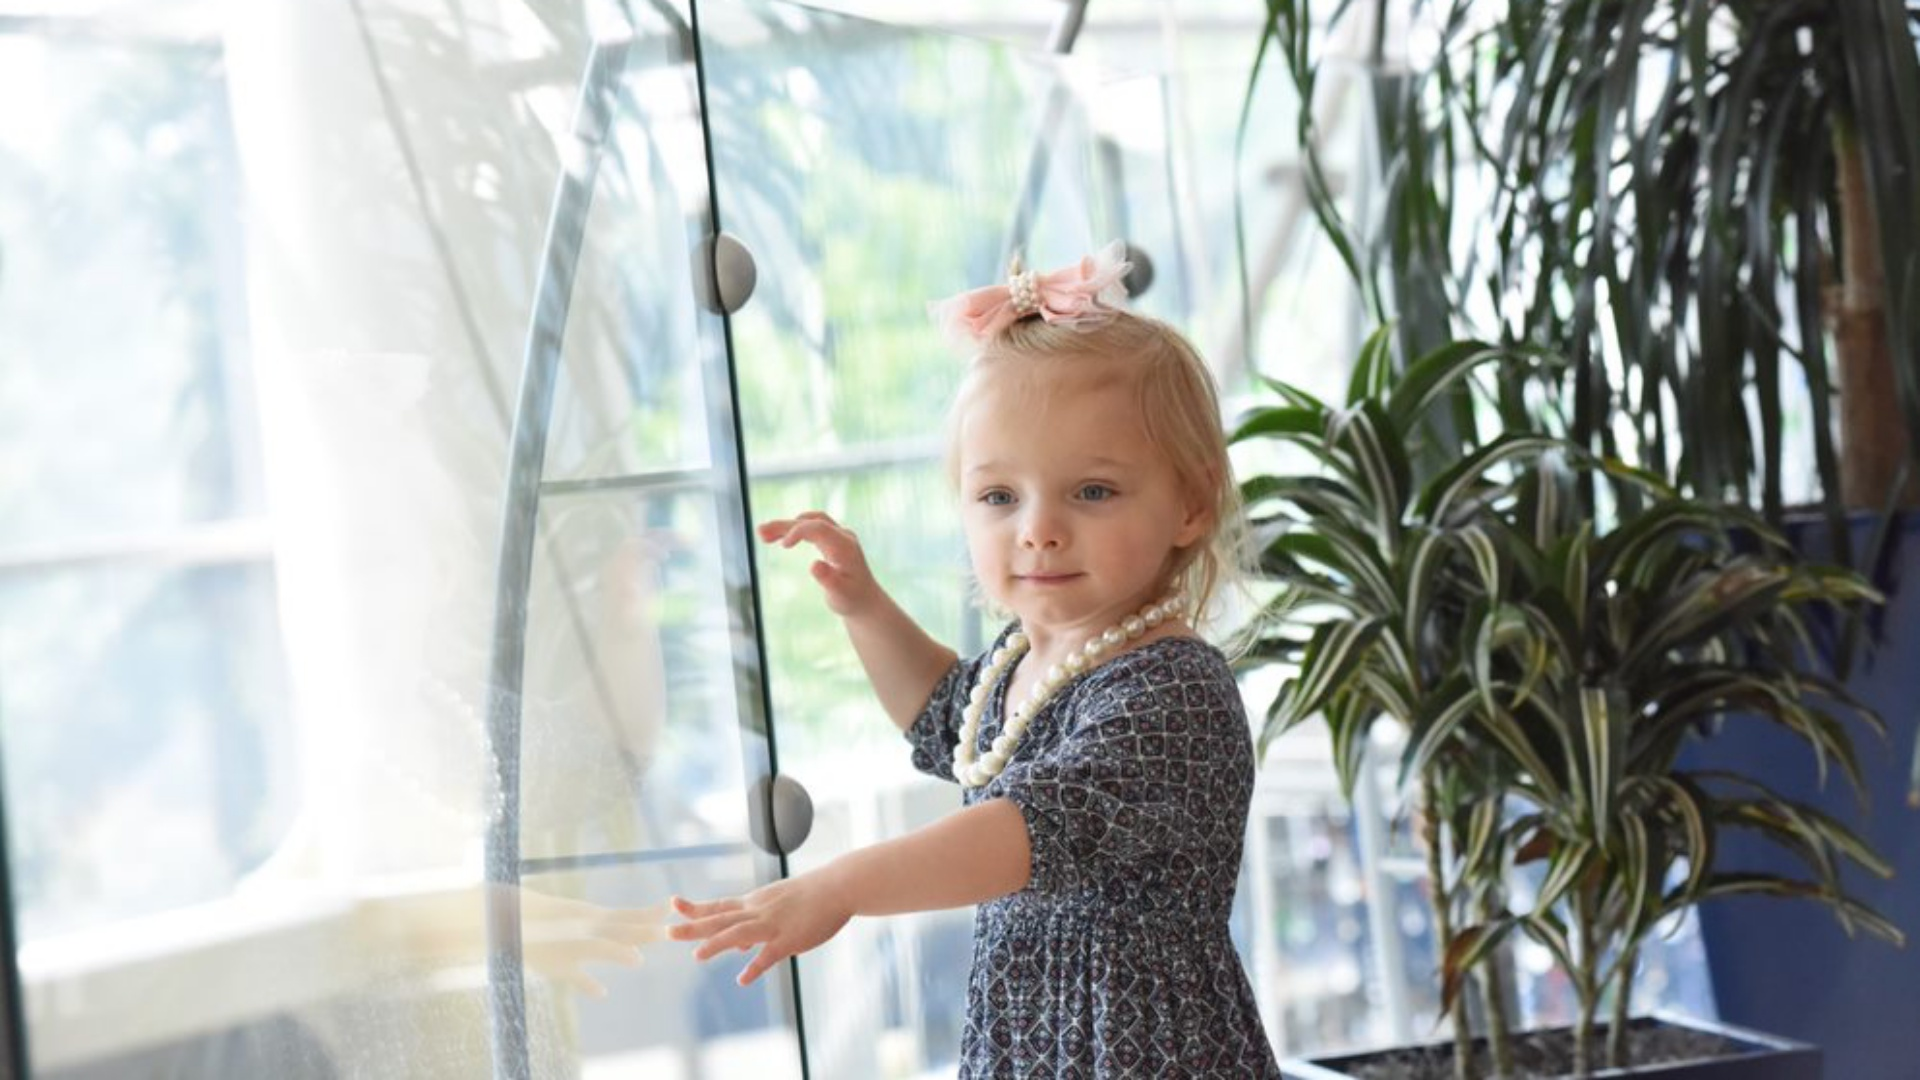 Chronic lung disease is a diagnosis without a real cure, but not without real hope. And 3-year-old Emelia Rawls is proof of that.